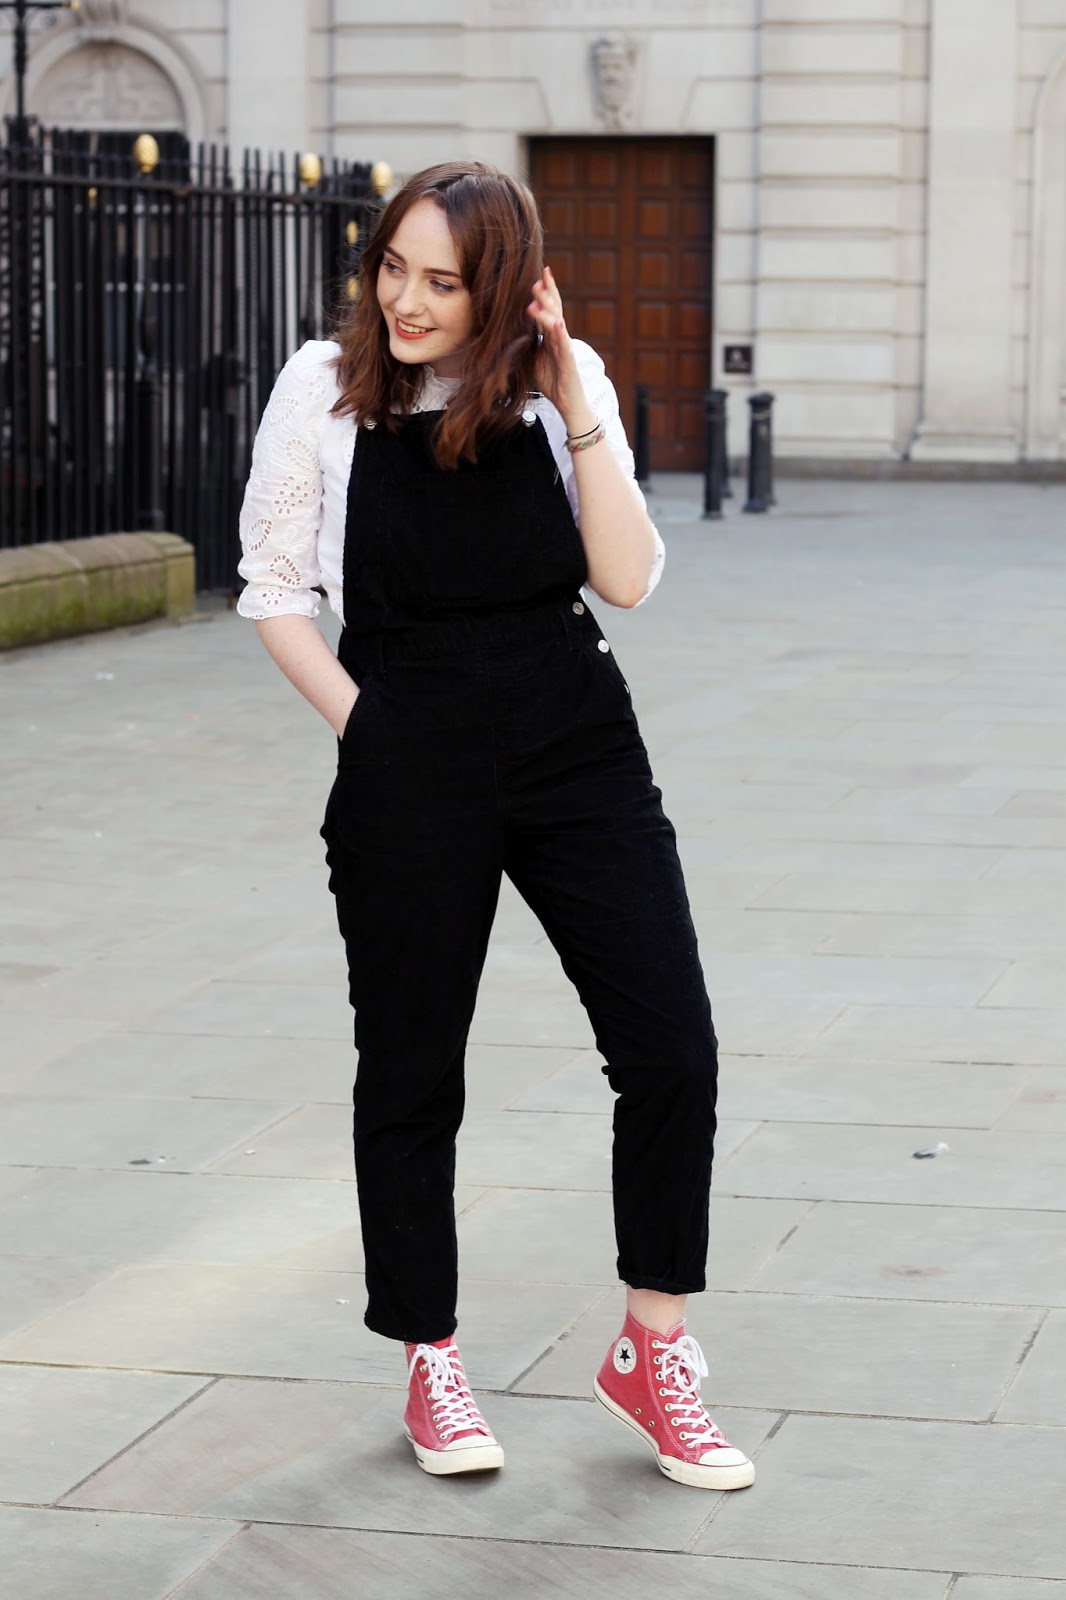 UK style blogger styling dungarees with white blouse and converse